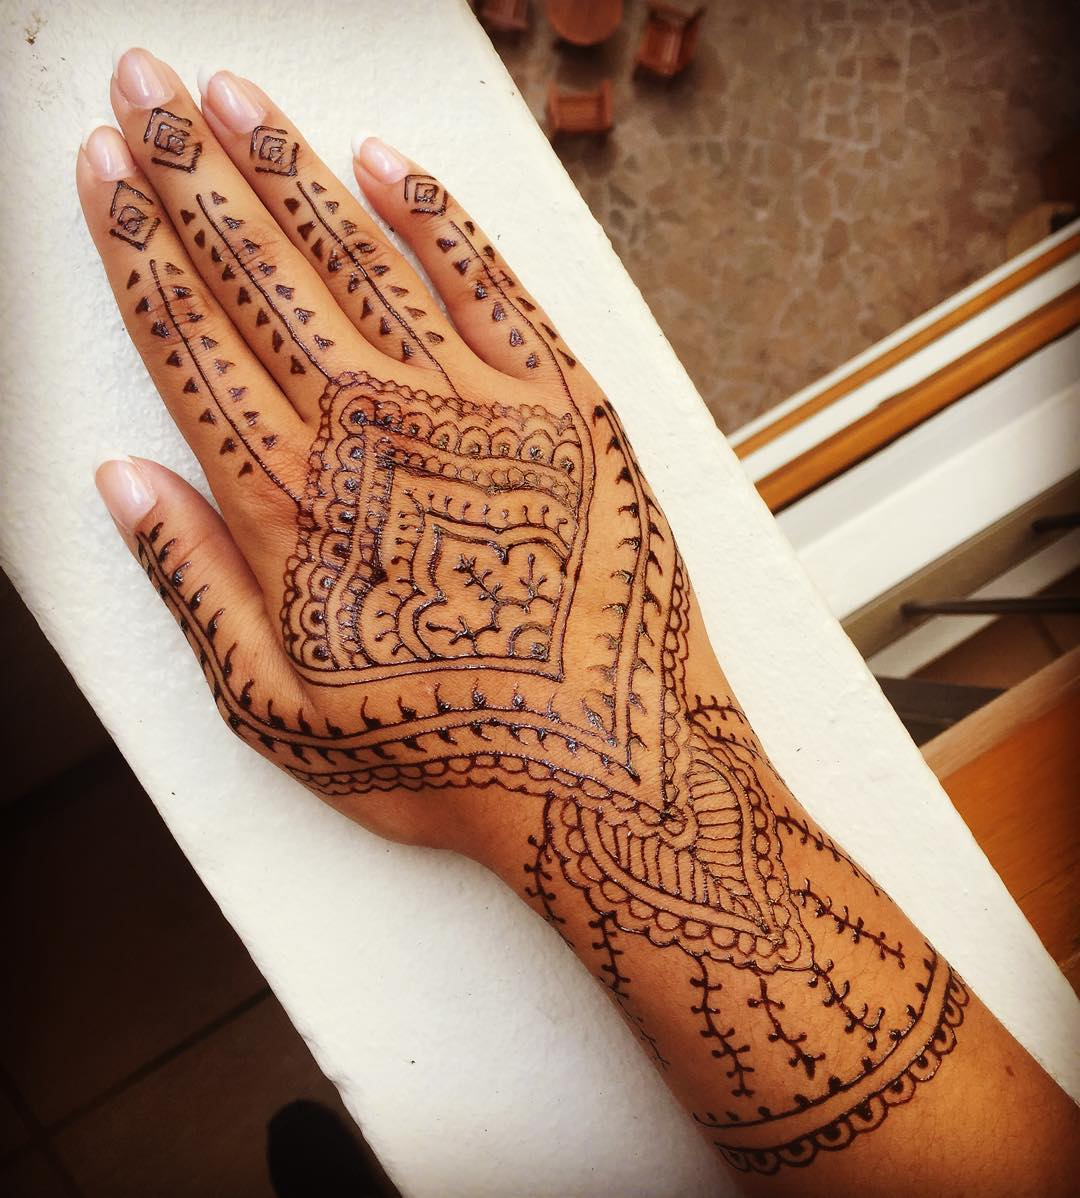 Henna Tattoo Designs Palm: How Long Do Henna Tattoos Last